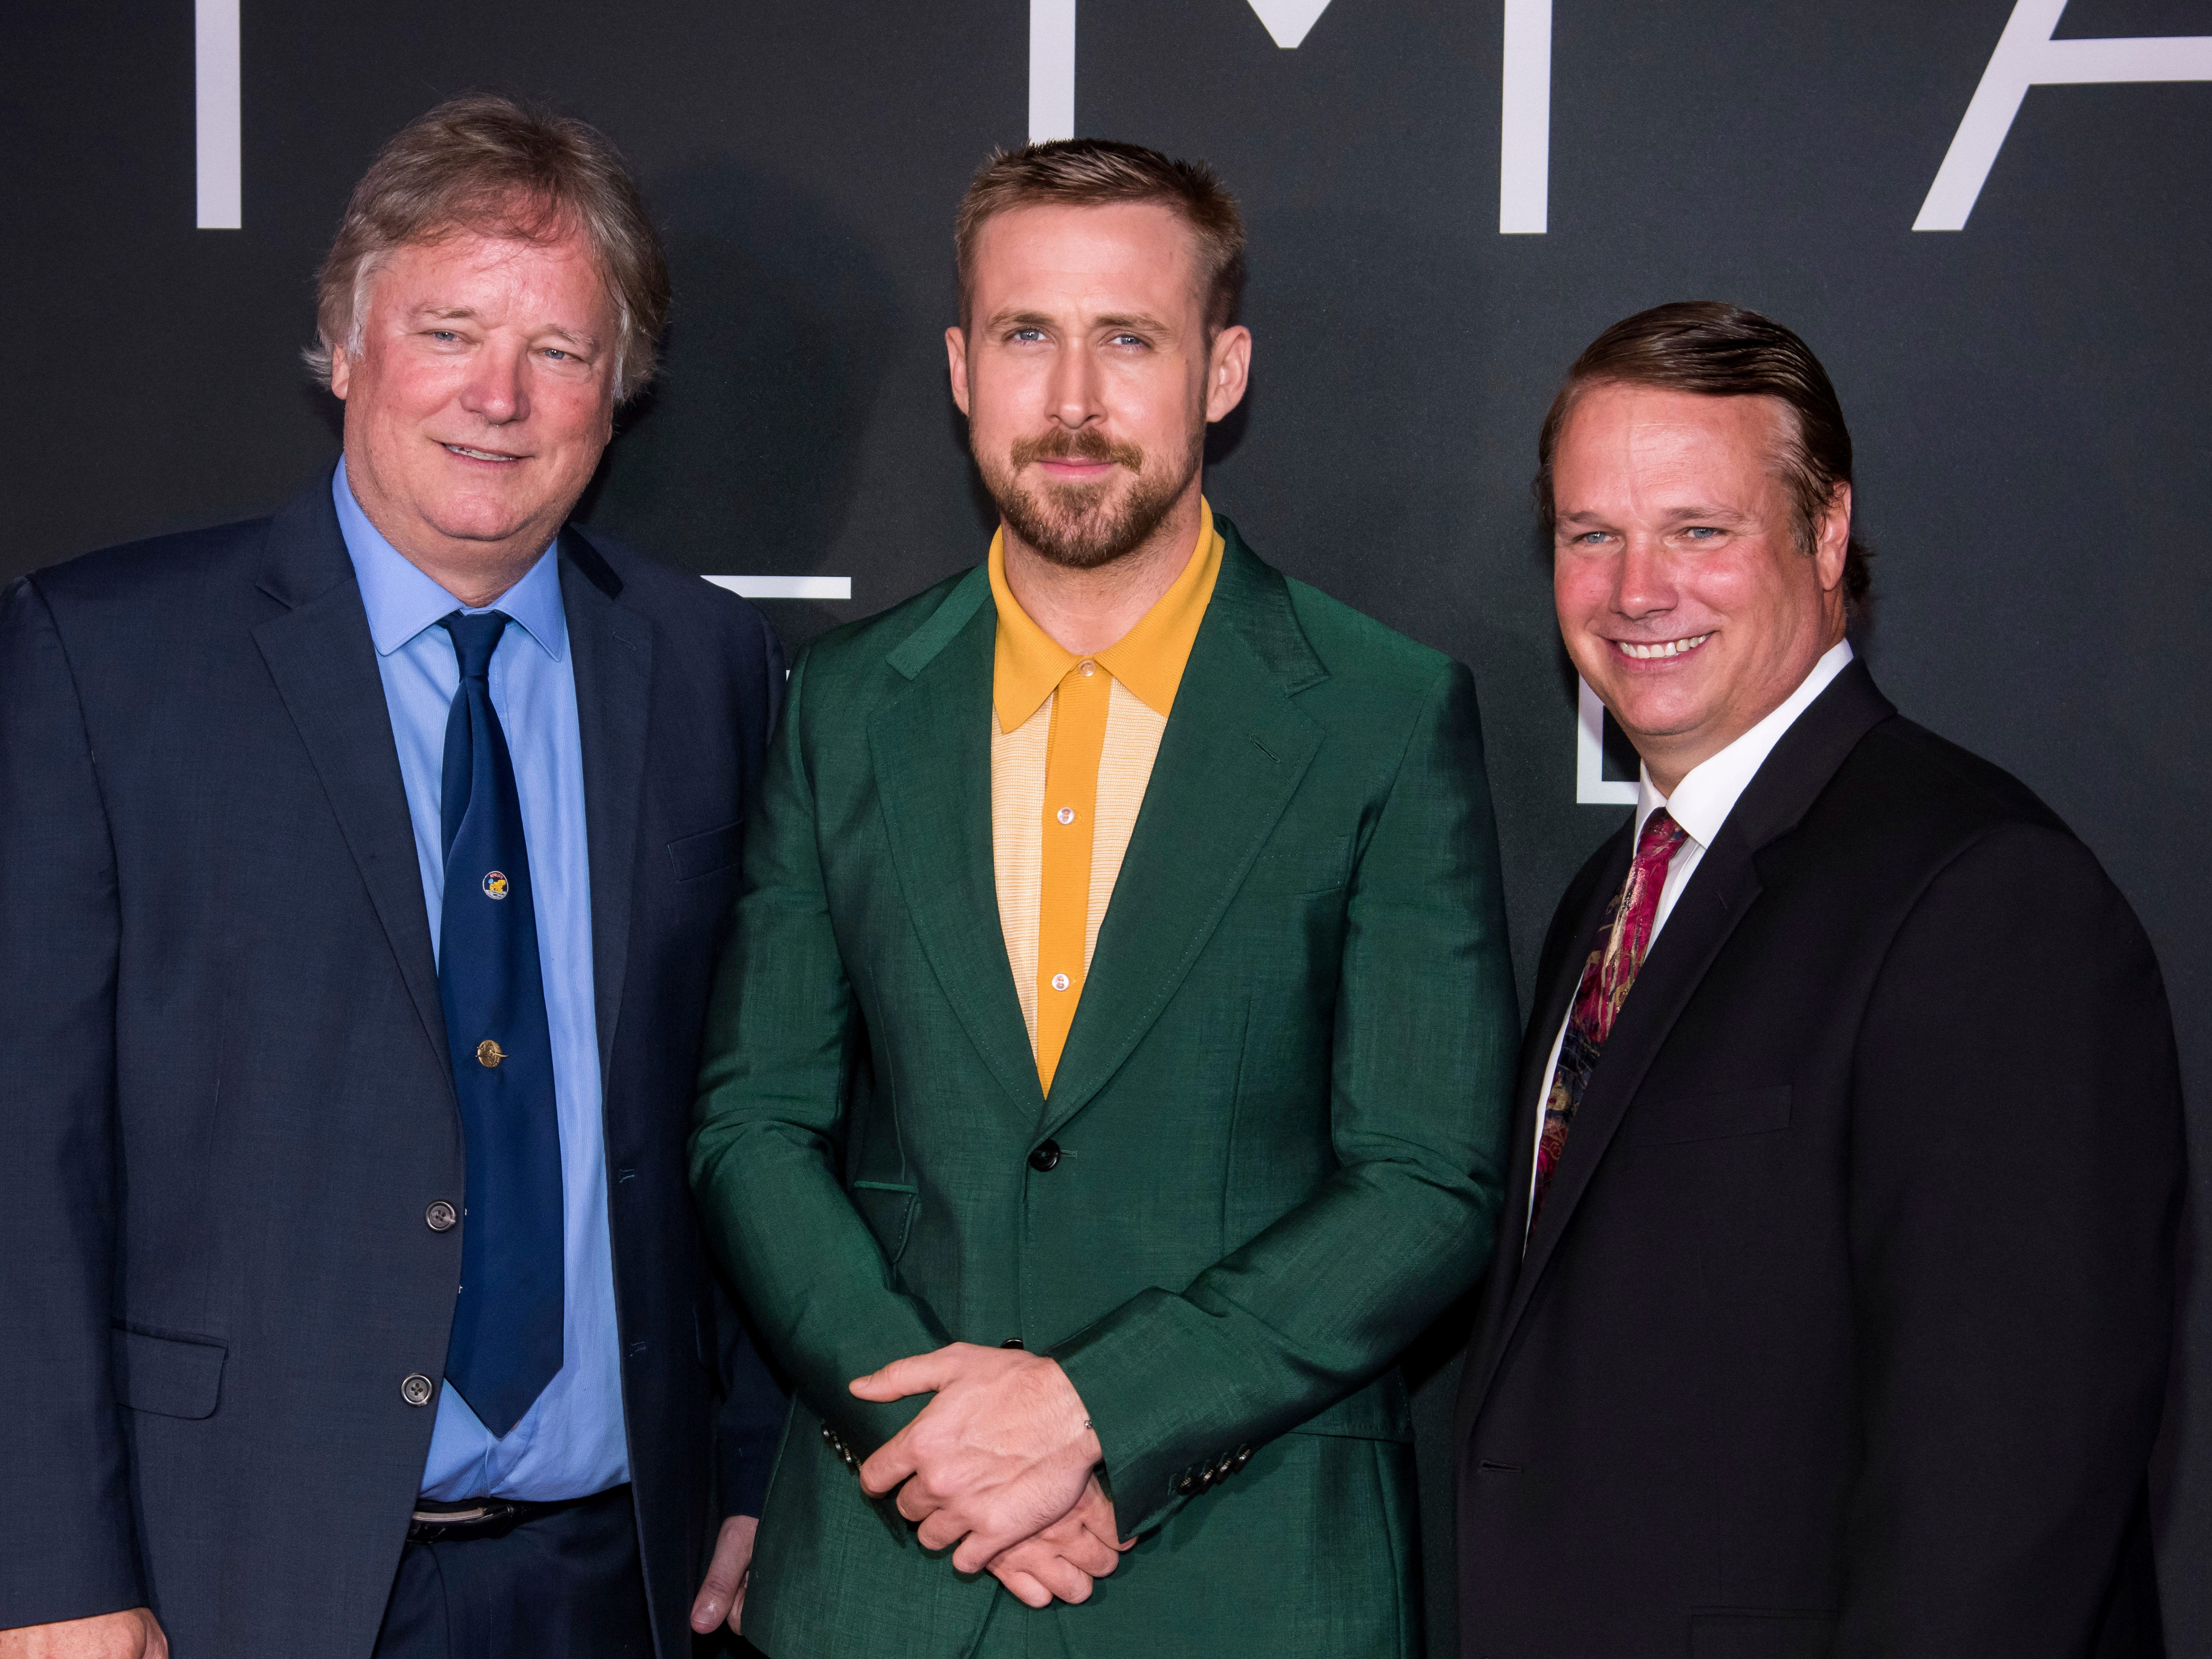 """Rick Armstrong, left, Ryan Gosling and Mark Armstrong attend the """"First Man"""" premiere at the National Air and Space Museum of the Smithsonian Institution on Thursday, Oct. 4, 2018, in Washington. (Photo by Charles Sykes/Invision/AP) ORG XMIT: NYCS113"""